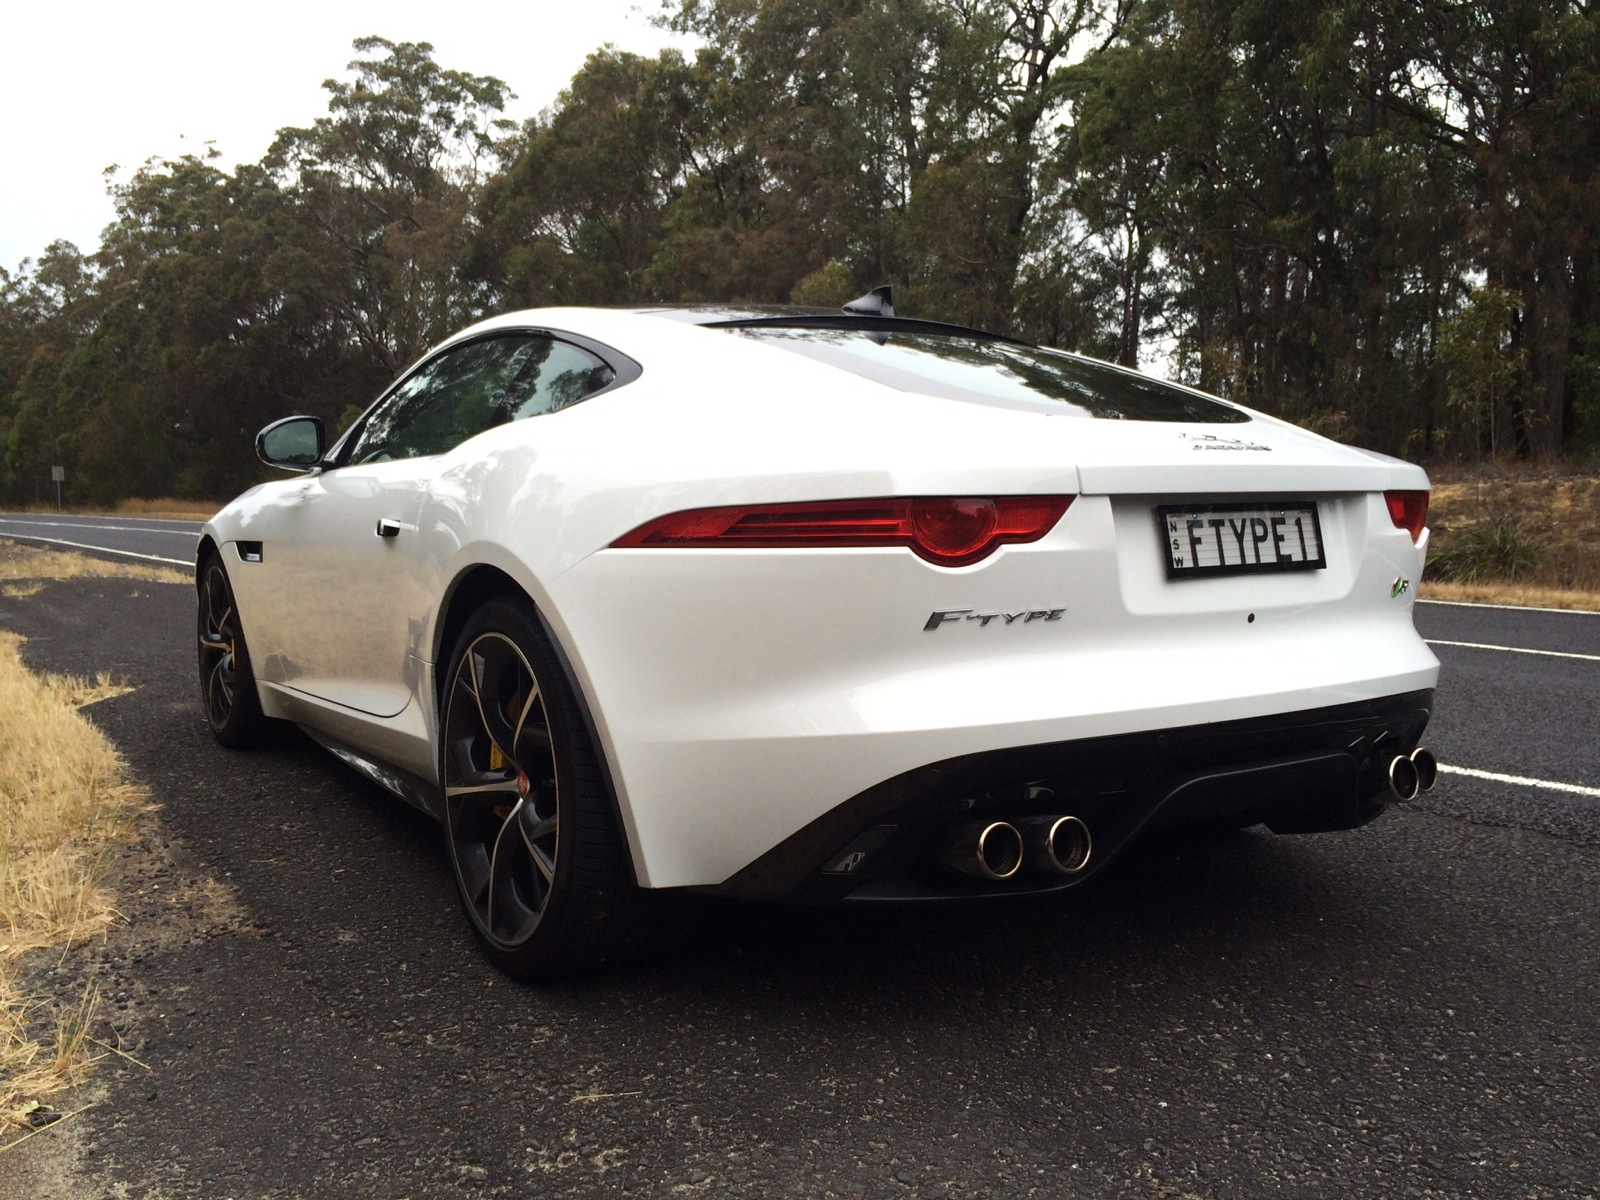 2015 jaguar f type r coupe review caradvice. Cars Review. Best American Auto & Cars Review